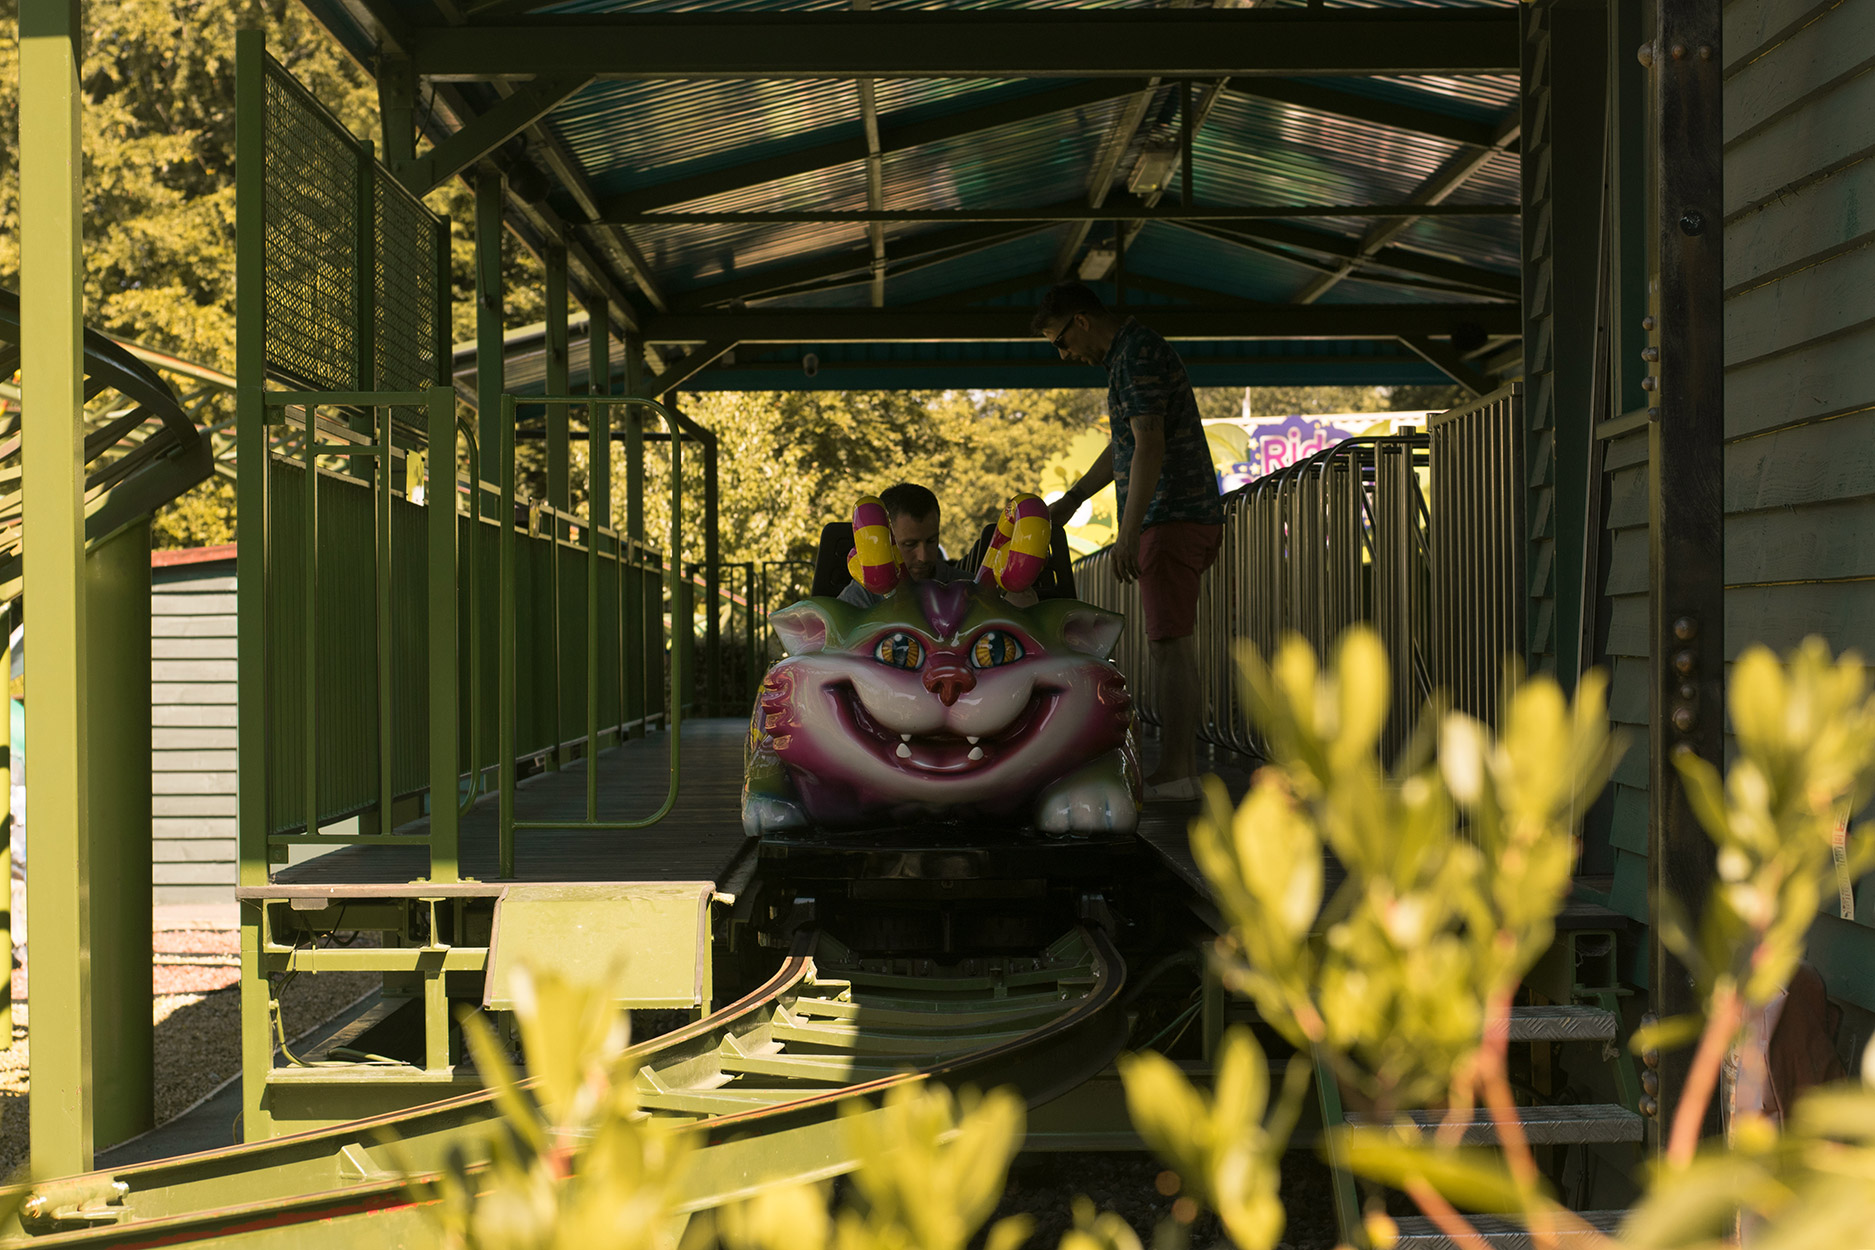 Kid's cat rollercoaster in Critter Creek - A family day out to Peppa Pig World and the Lost Kingdom at Paultons Park, Hampshire